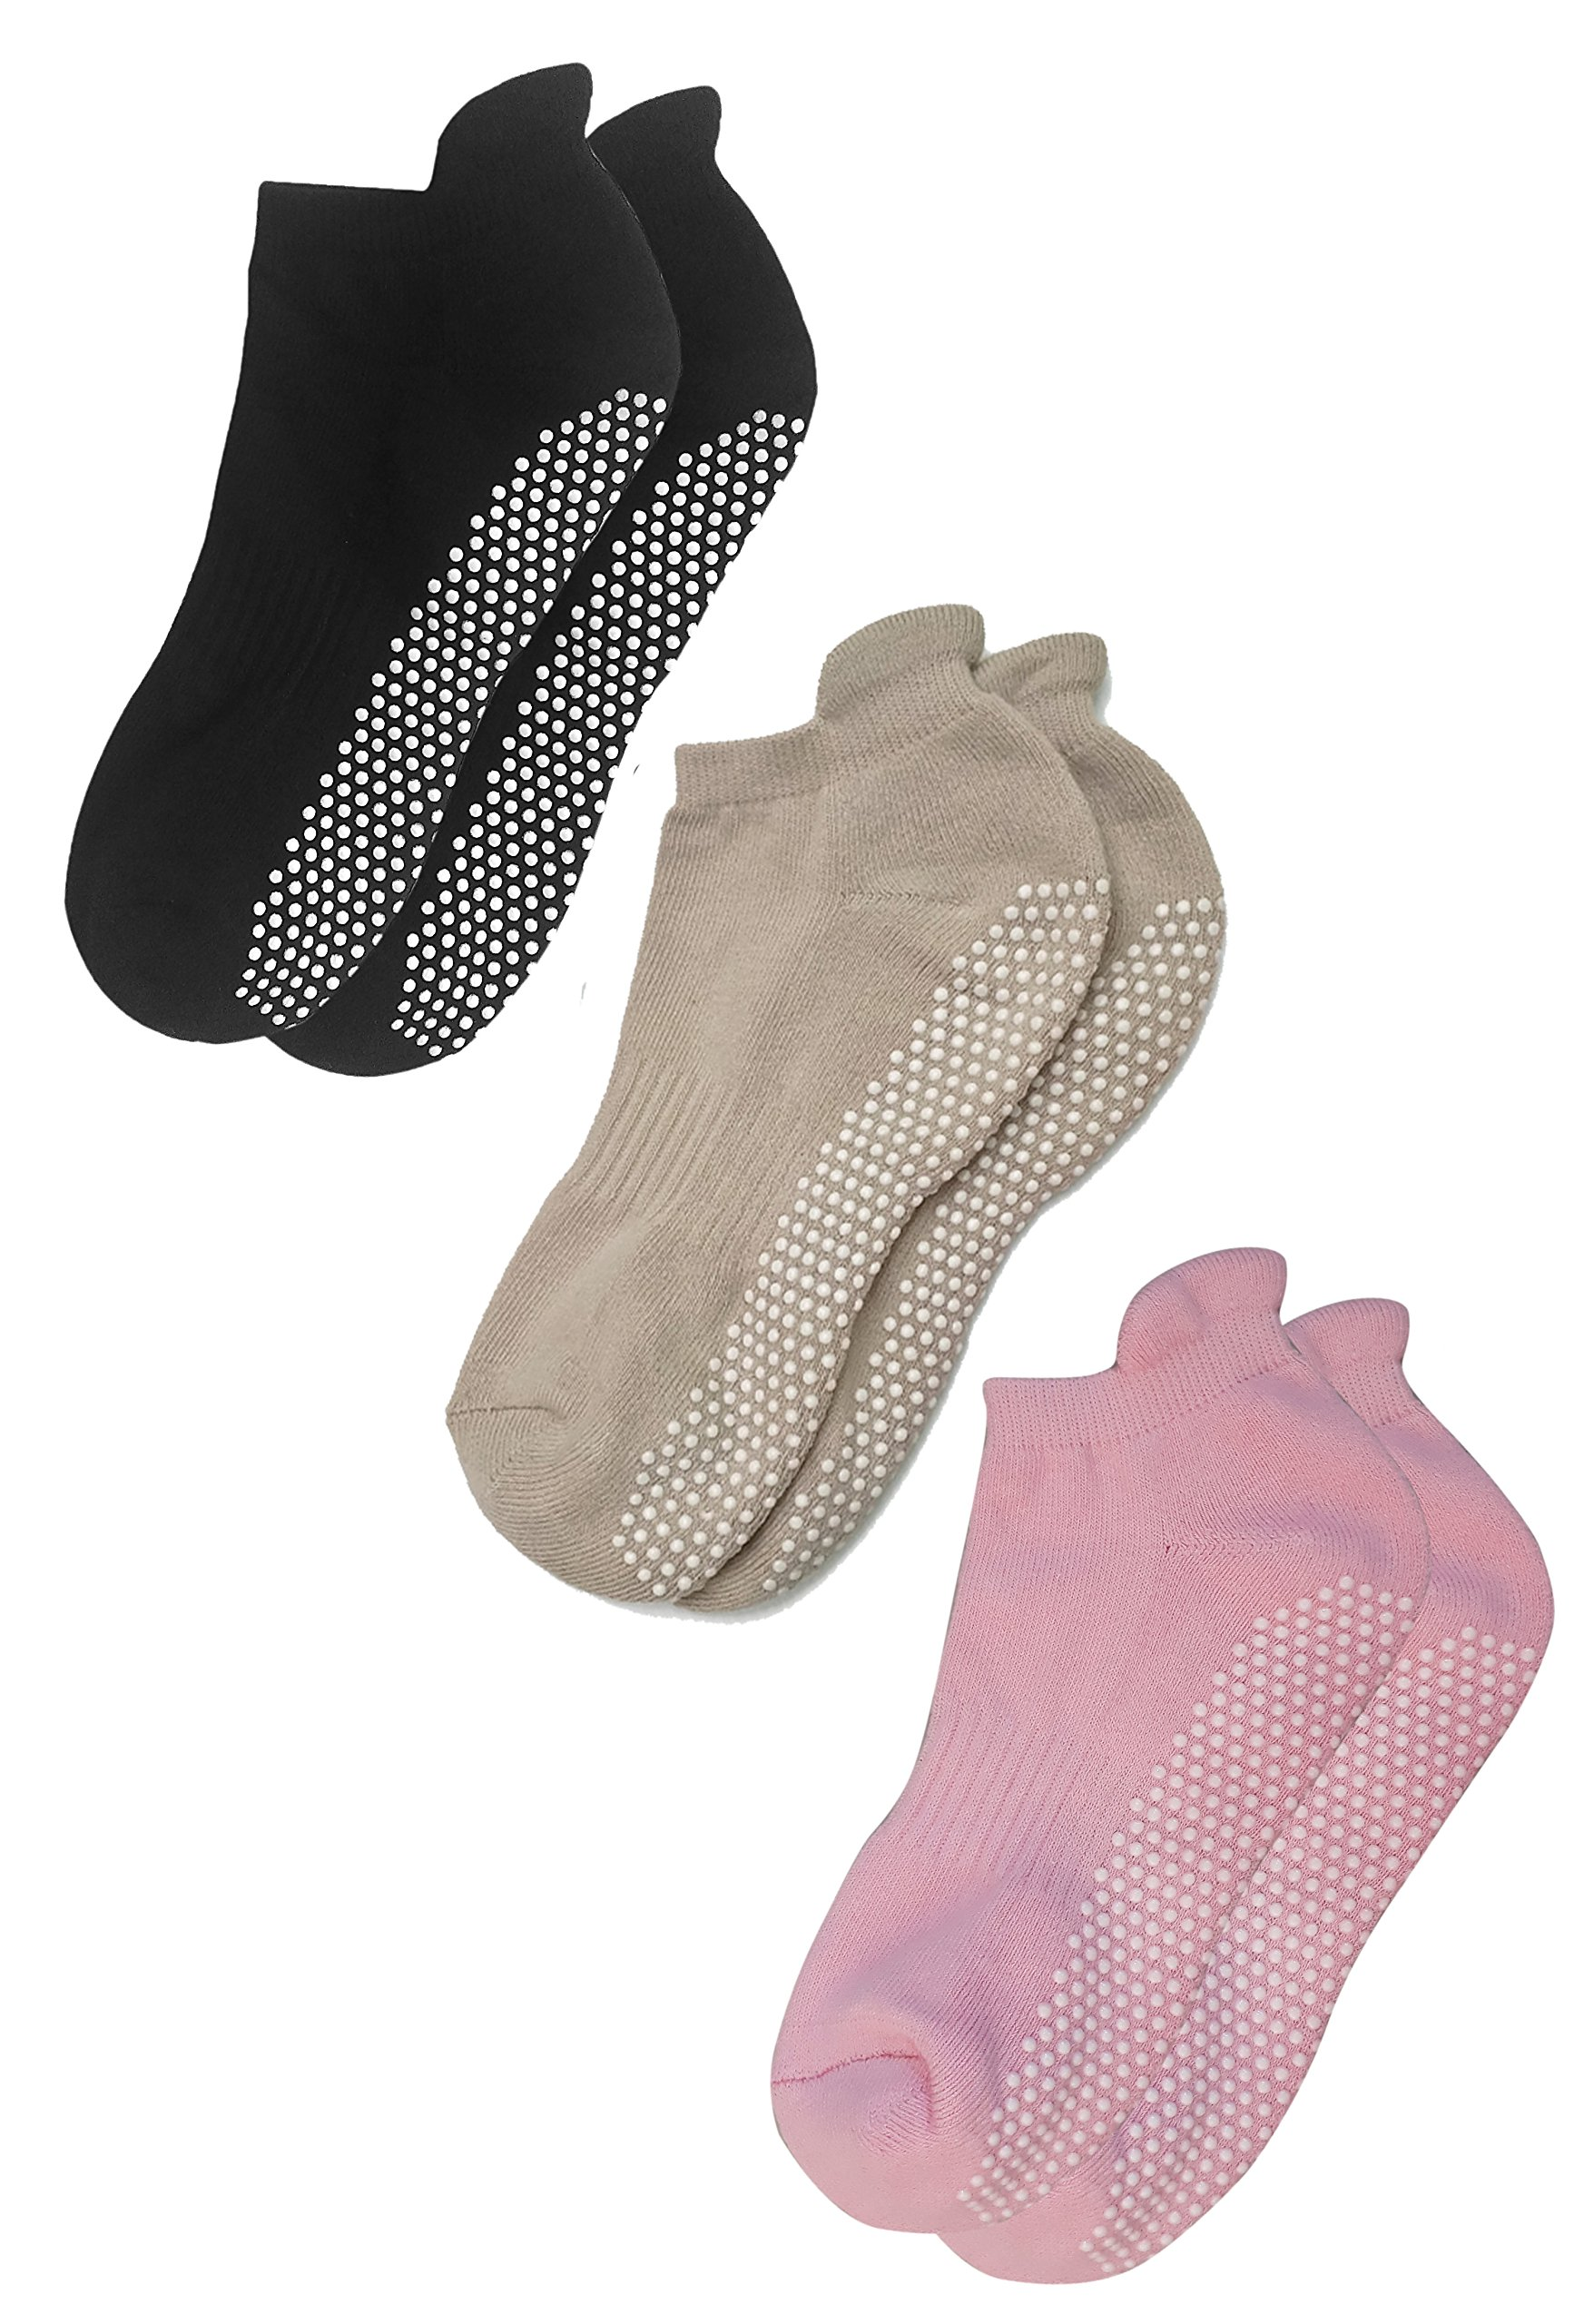 Deluxe Anti Slip Non Skid Barre Yoga Pilates Hospital Socks with grips for Adults Men Women (Medium, 3-pair/black+beige+pink)